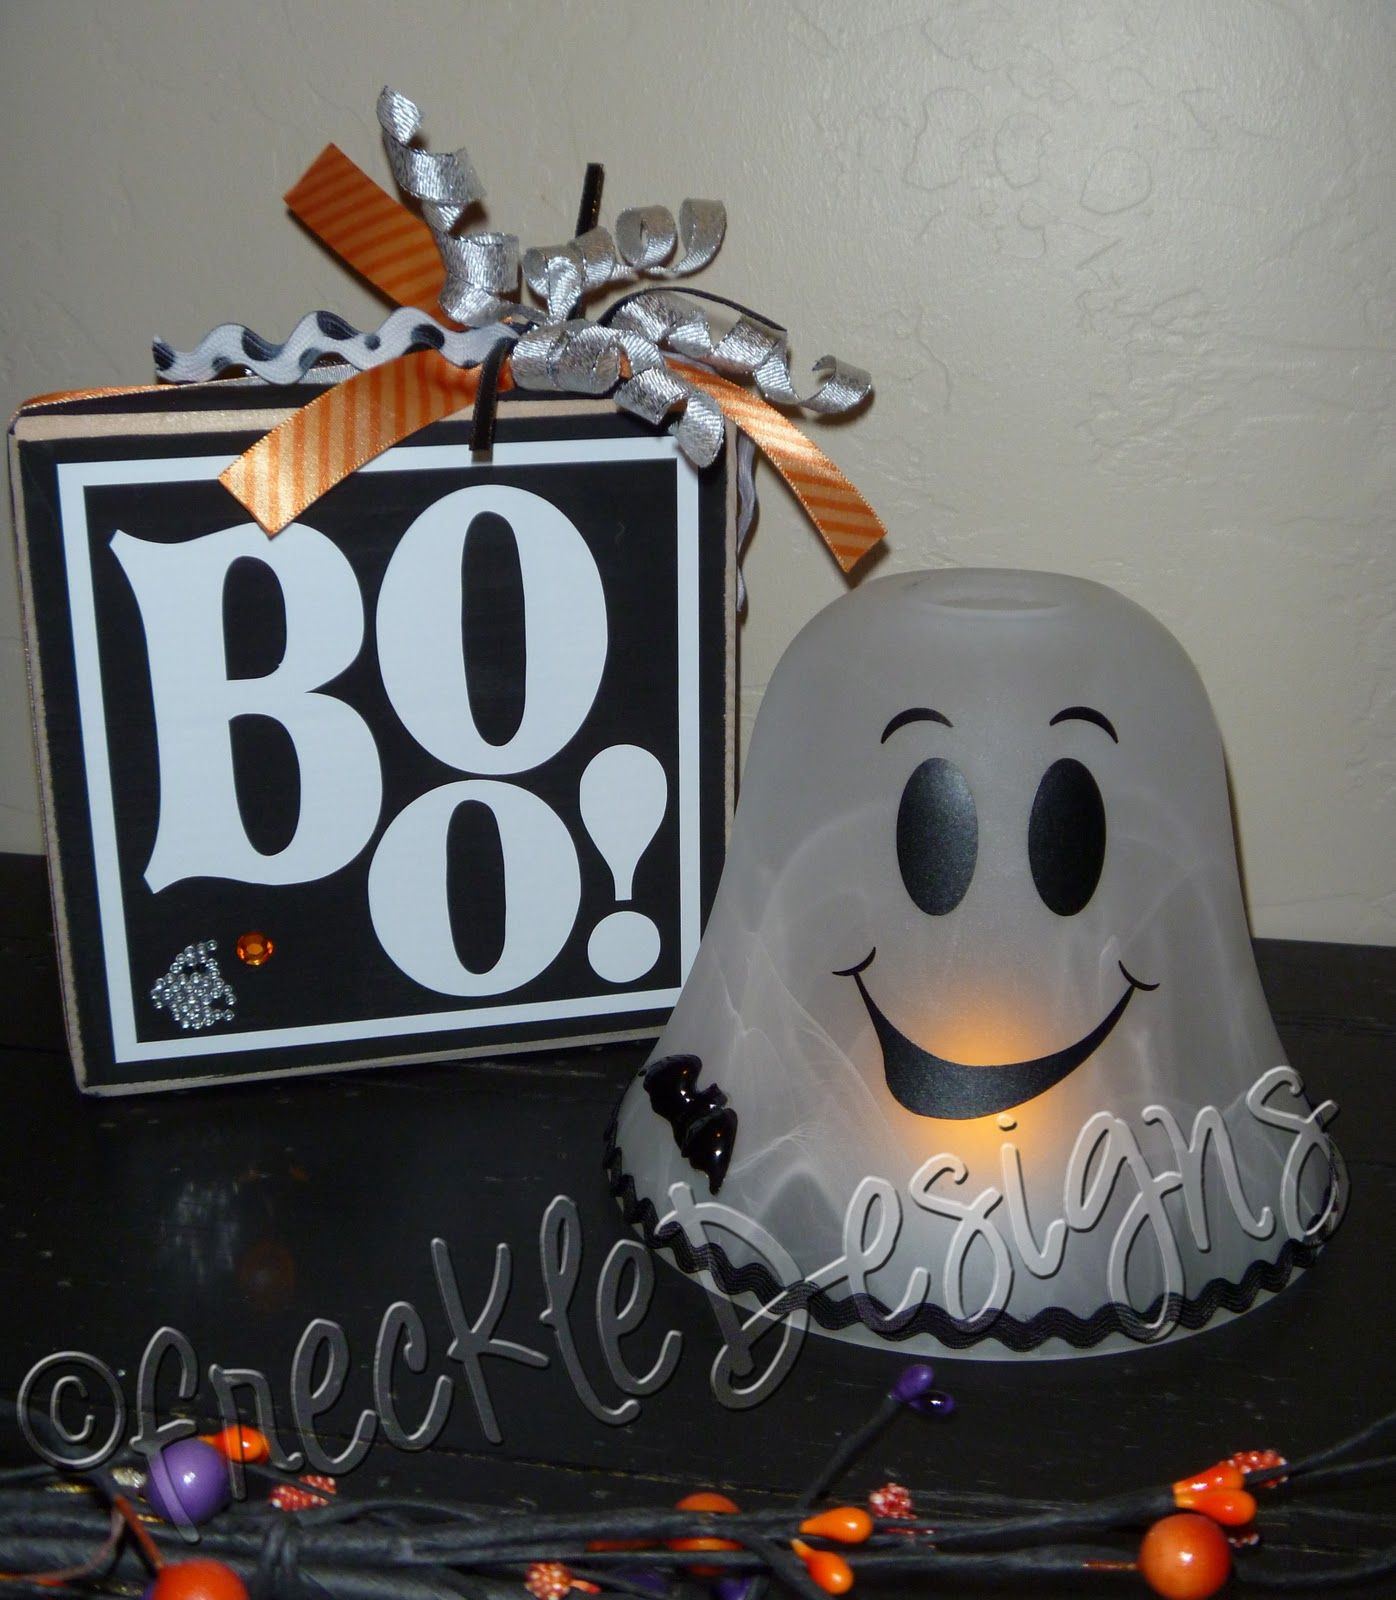 Happy Halloween Tips On Home Decoration 1: Love The Ghost Made From Lamp Shade! The Light Is Done By